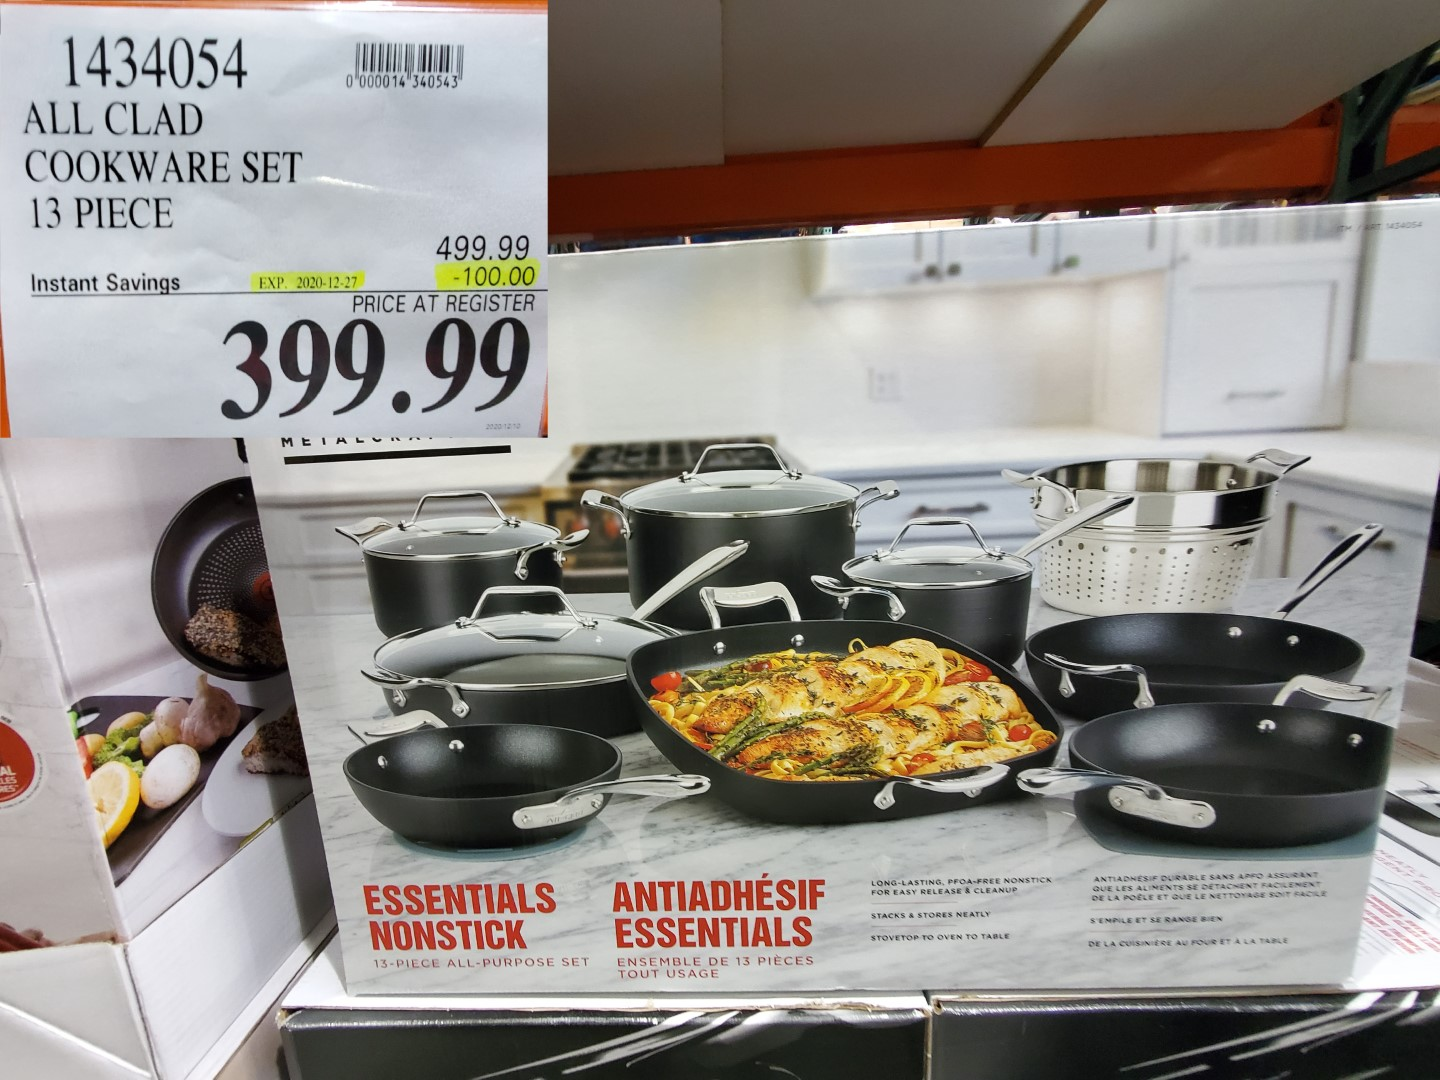 all clad 13 piece cookware set